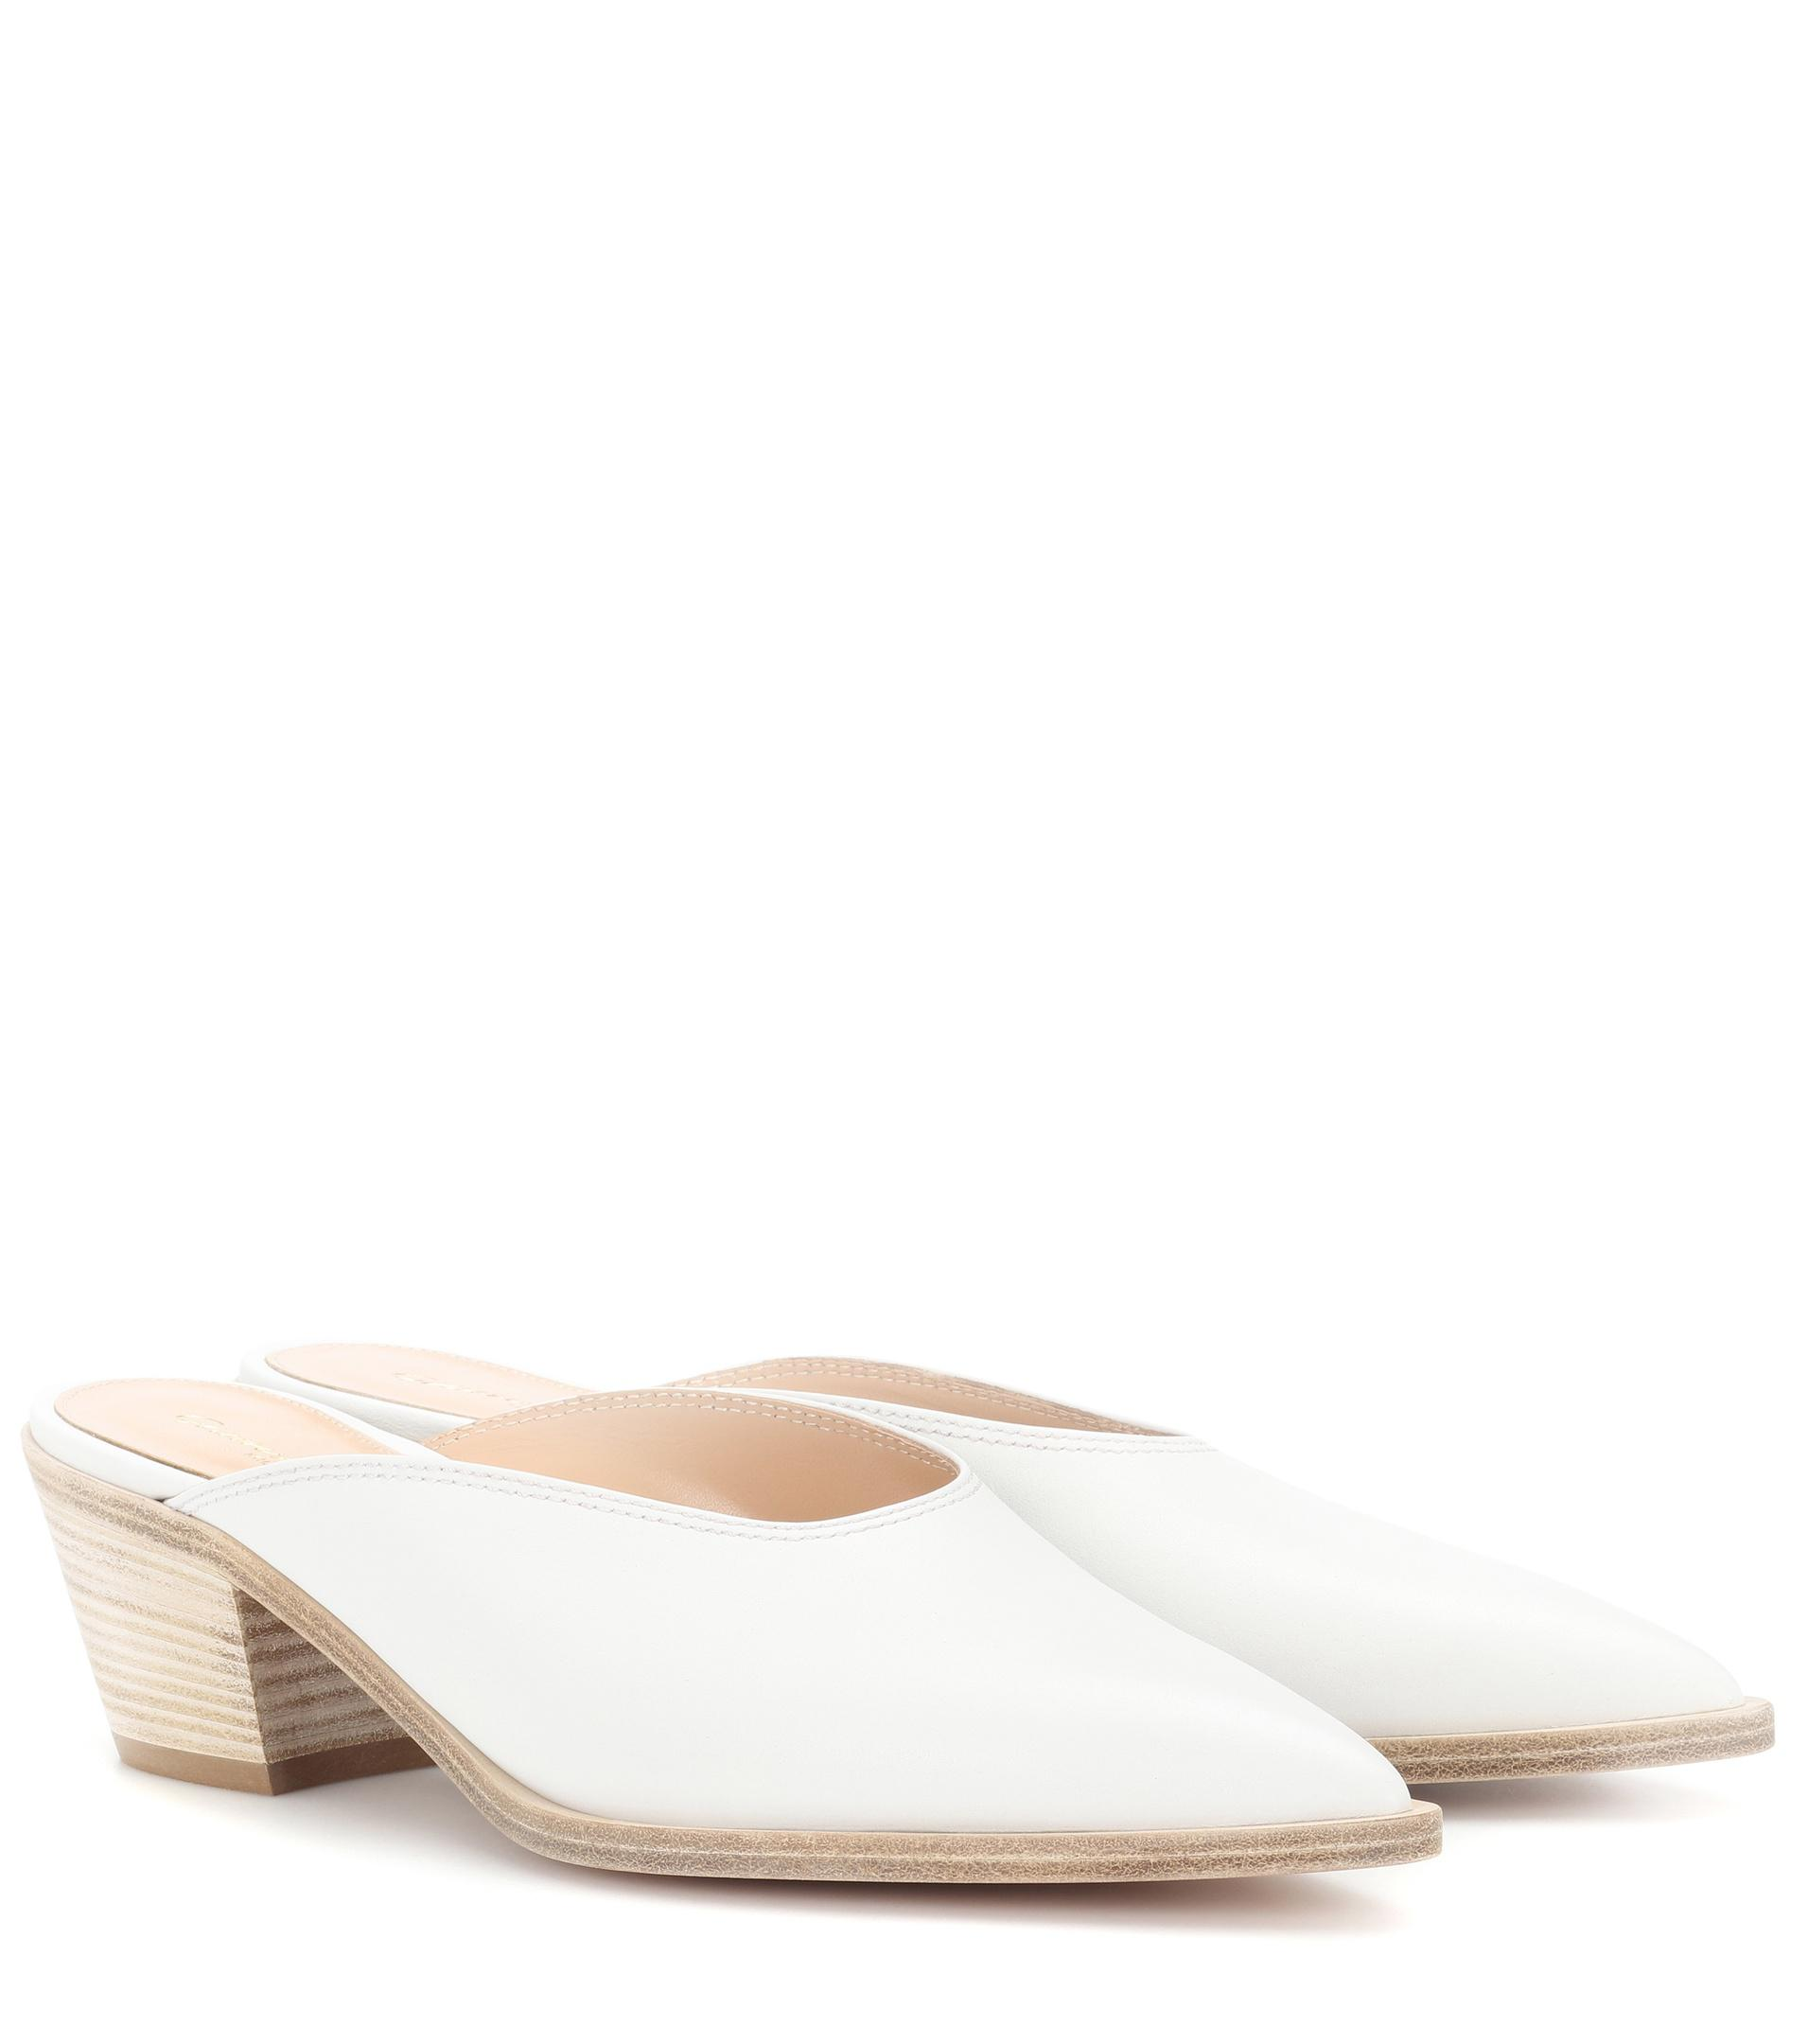 49dae130a Lyst - Gianvito Rossi Leather Block-heel Mules in White